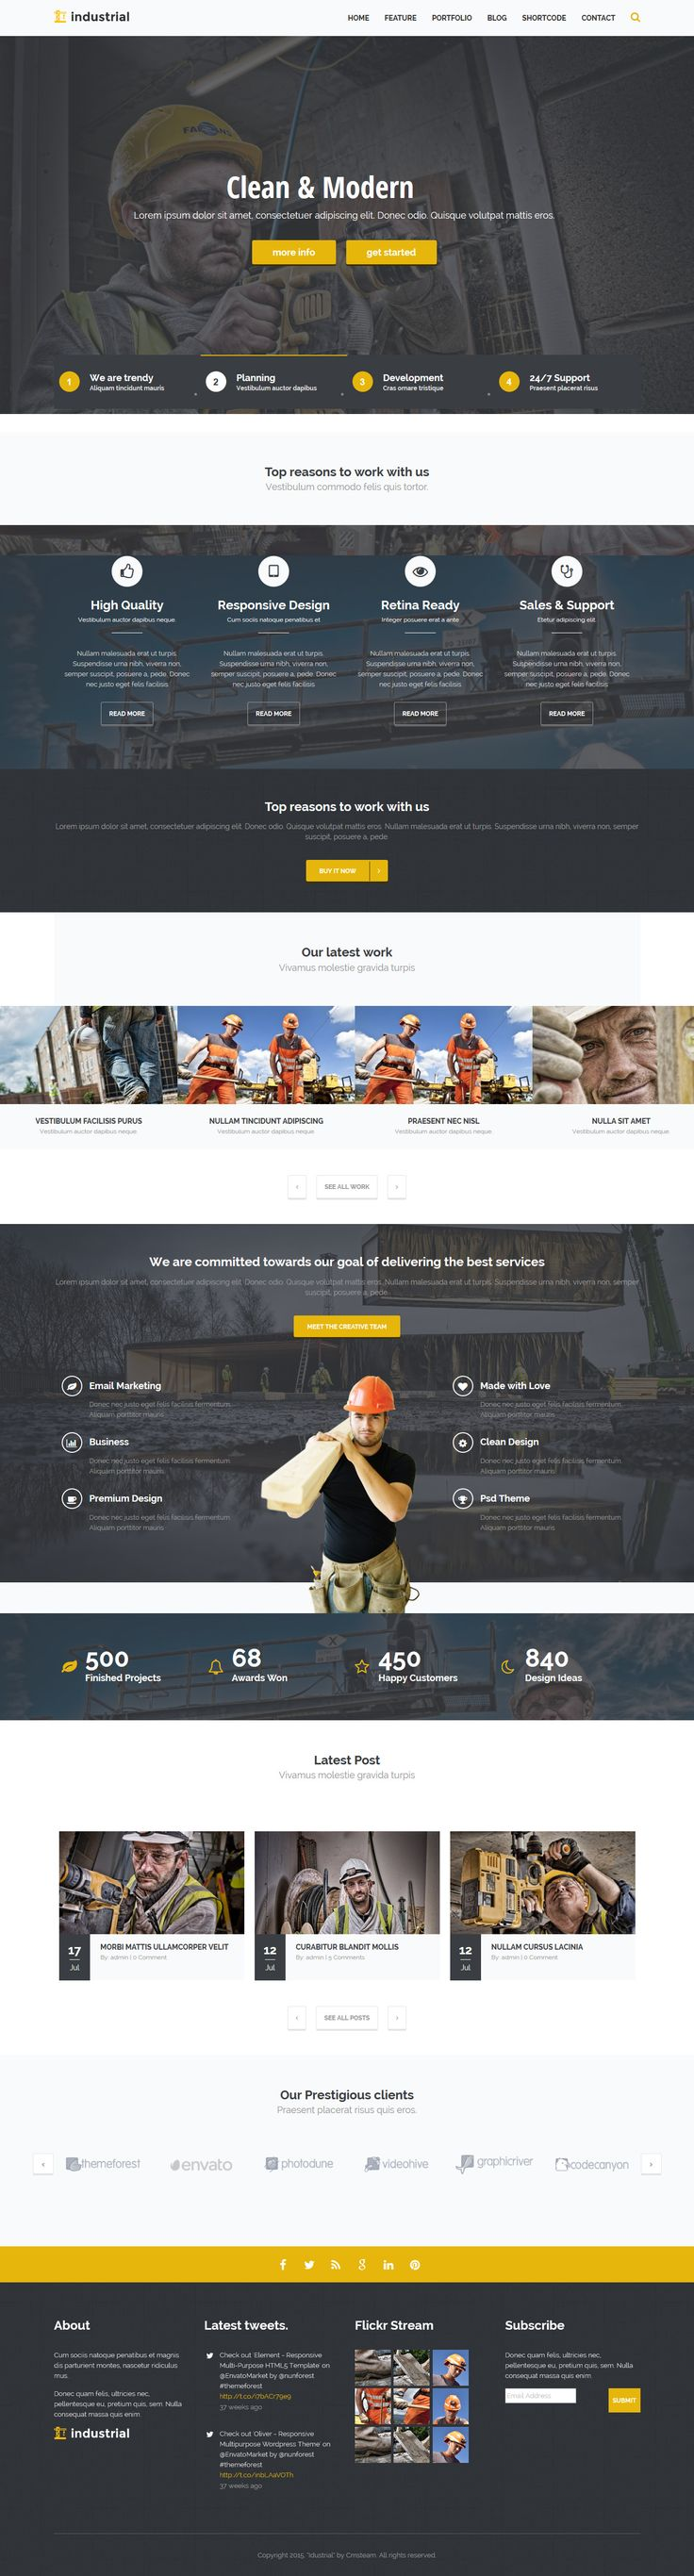 wedding invitation template themeforest%0A Buy Industrial  Construction  u     Industry WP Theme by cmsteam on ThemeForest   Description Industrial is clean and retina ready Wordpress construction